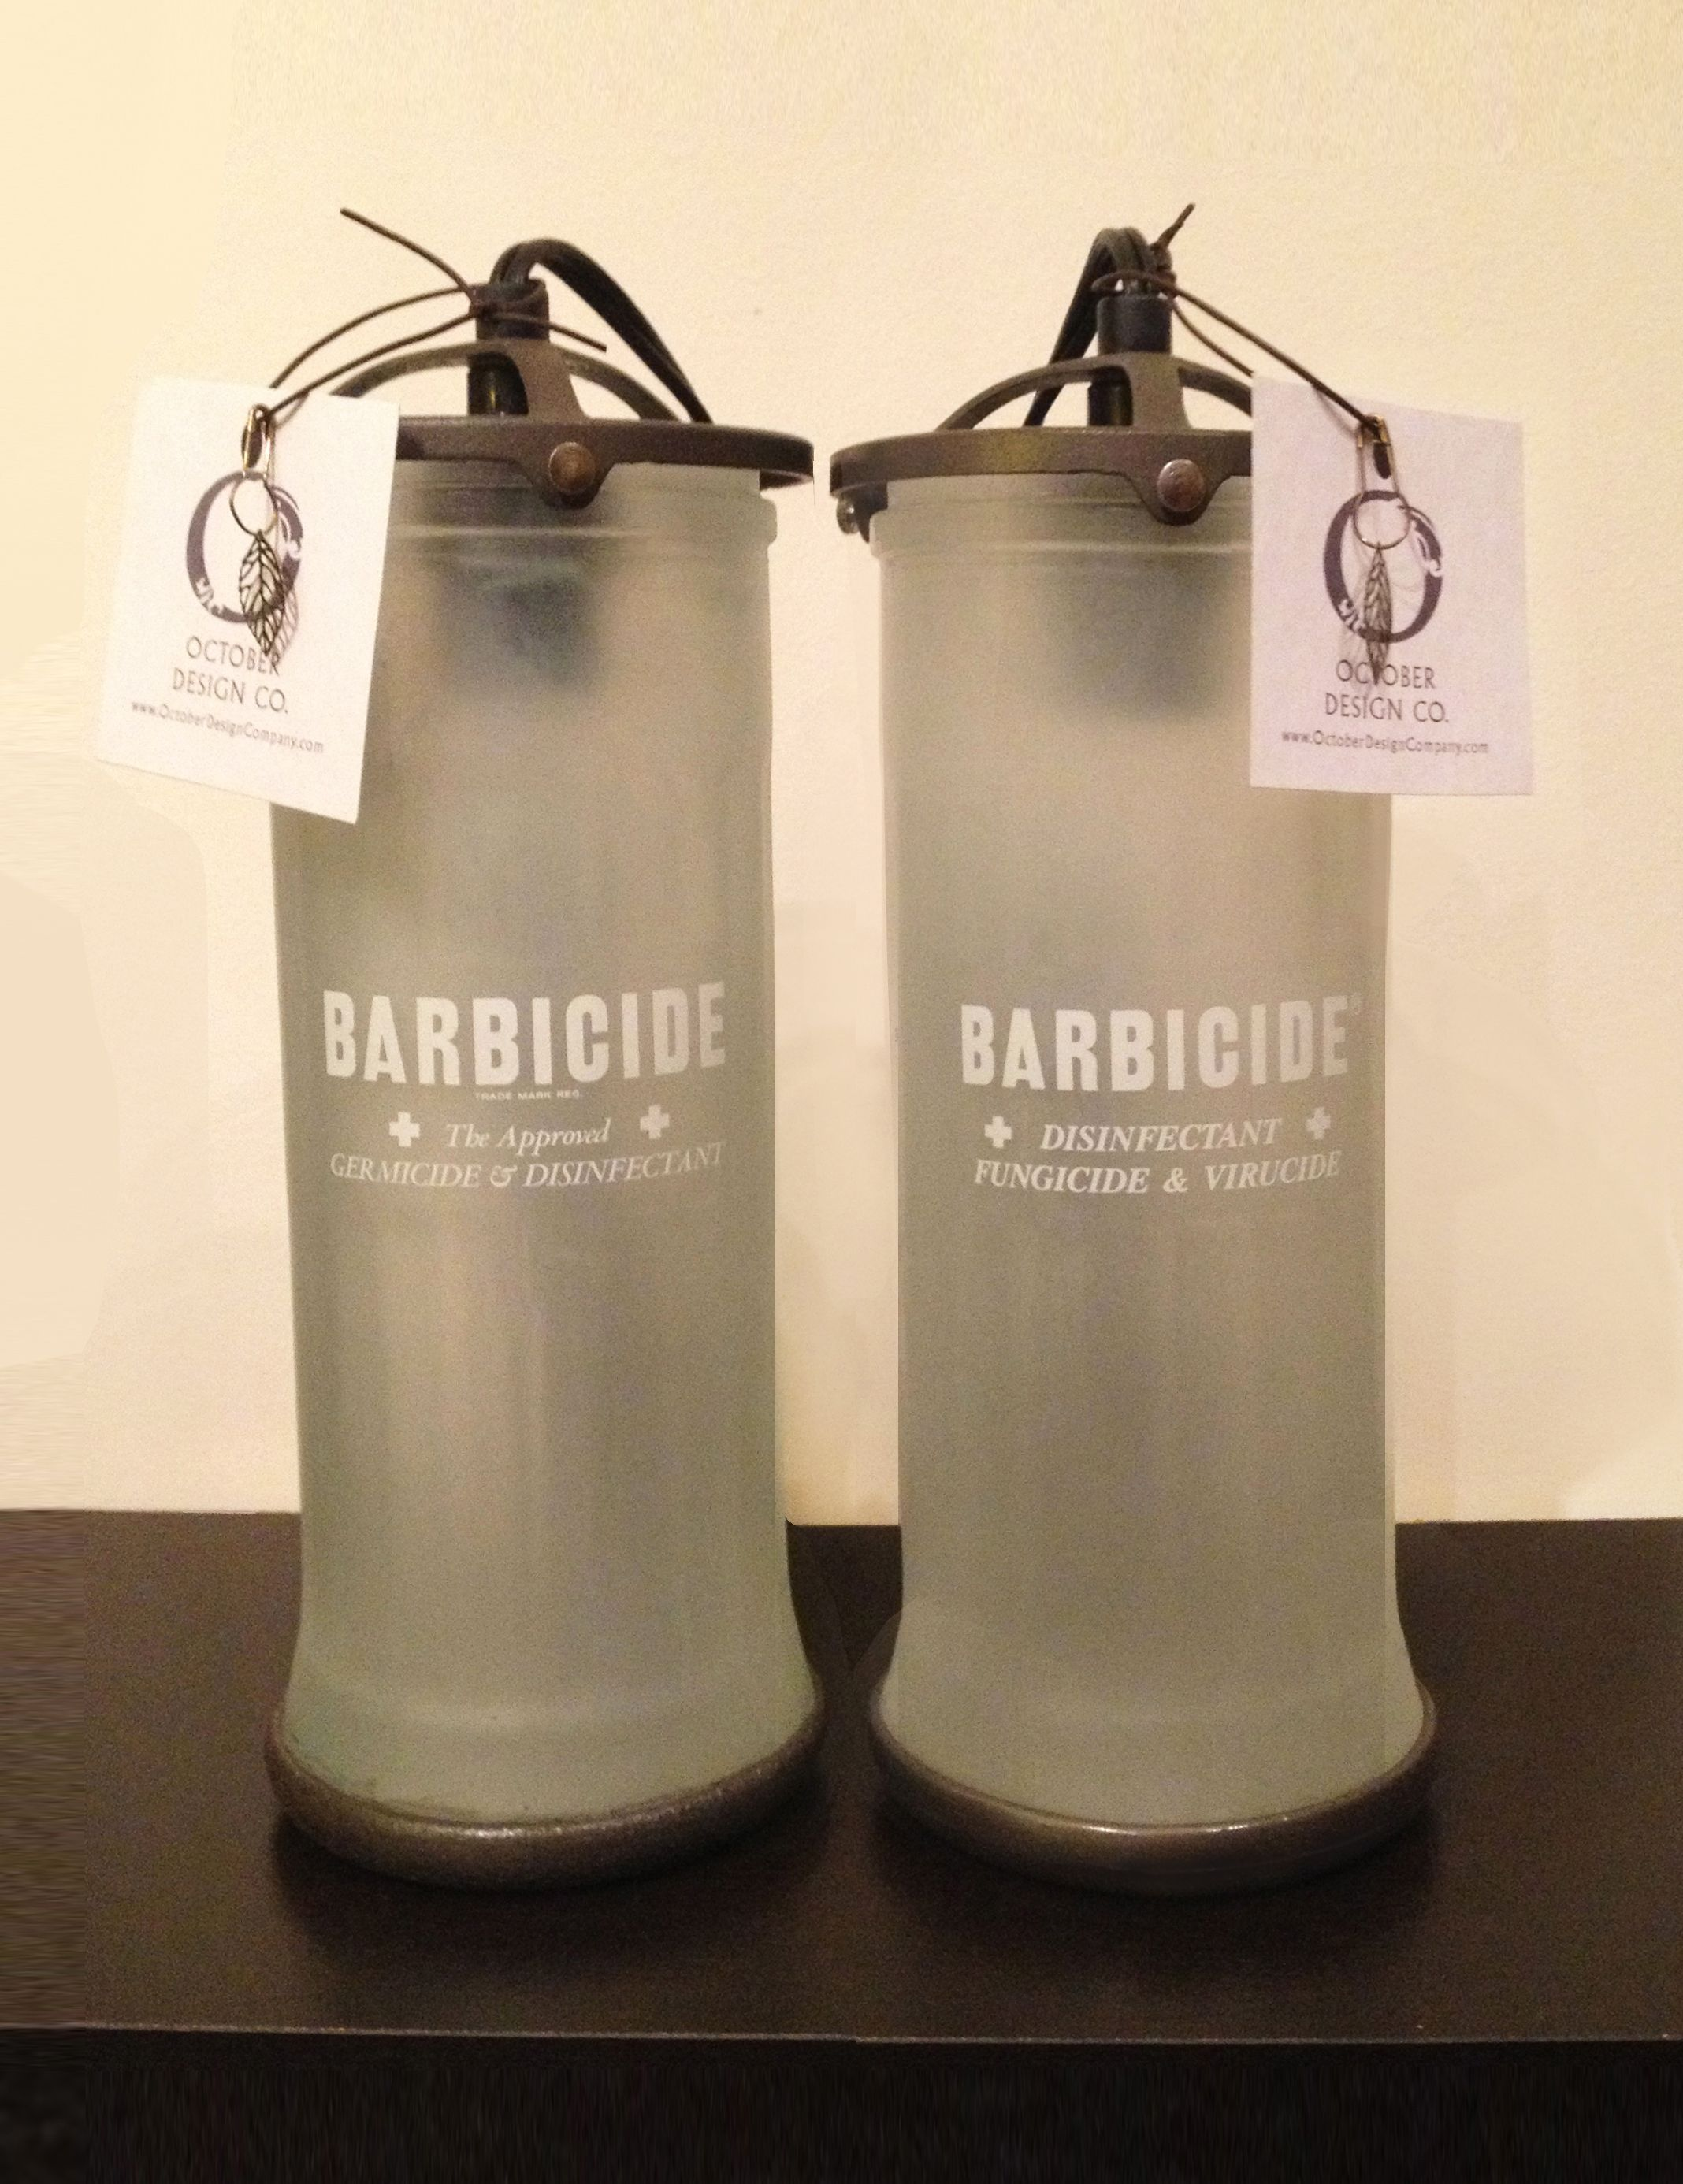 Barbershop Lamps From Upcycled Barbicide Jars, Created By Stephanie Reppas,